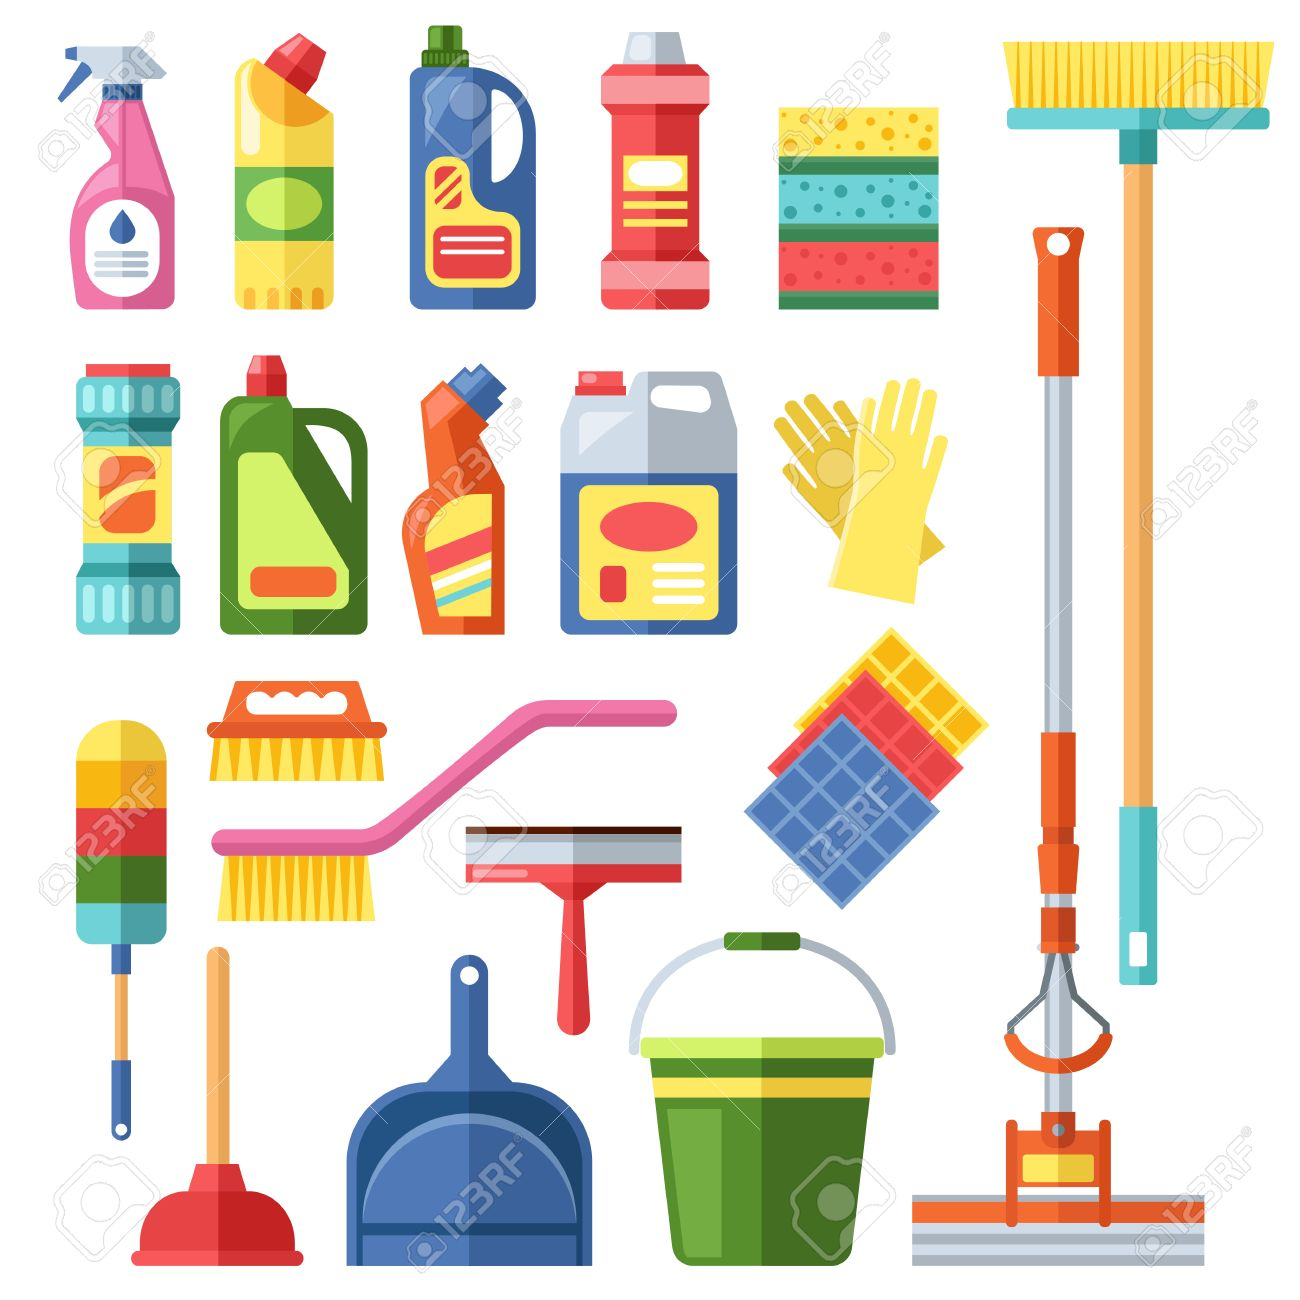 House Cleaning Tools And Cleaning Products Flat Vector Icons Set